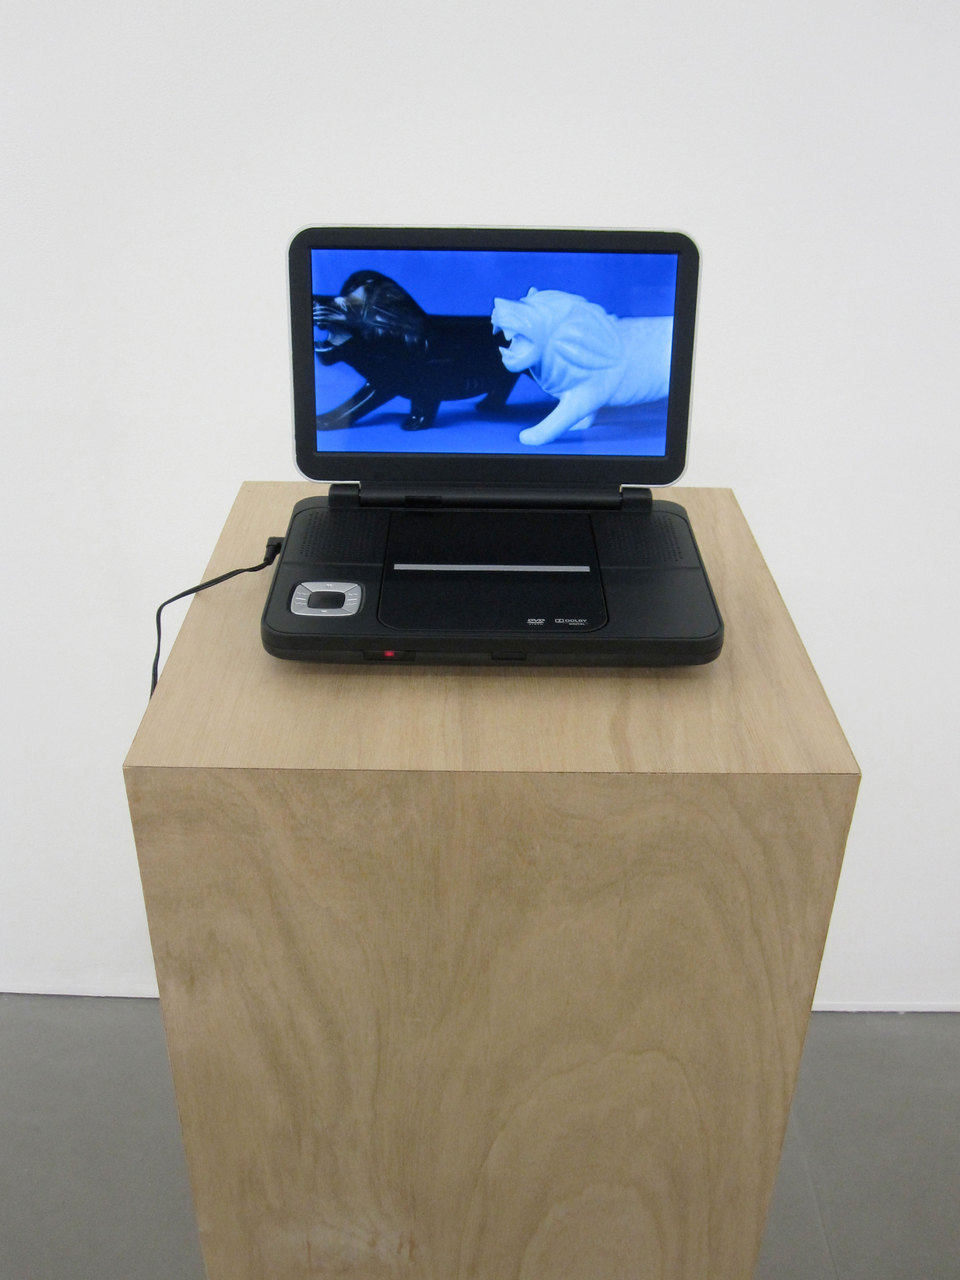 "Maria Taniguchi, 'Part 2: Untitled (Marble Lions)', 2010, 12'08"" looped digital video, dvd player, plywood plinth, plinth (w.360 x d.360mm x h.1000mm), Cell Project Space"